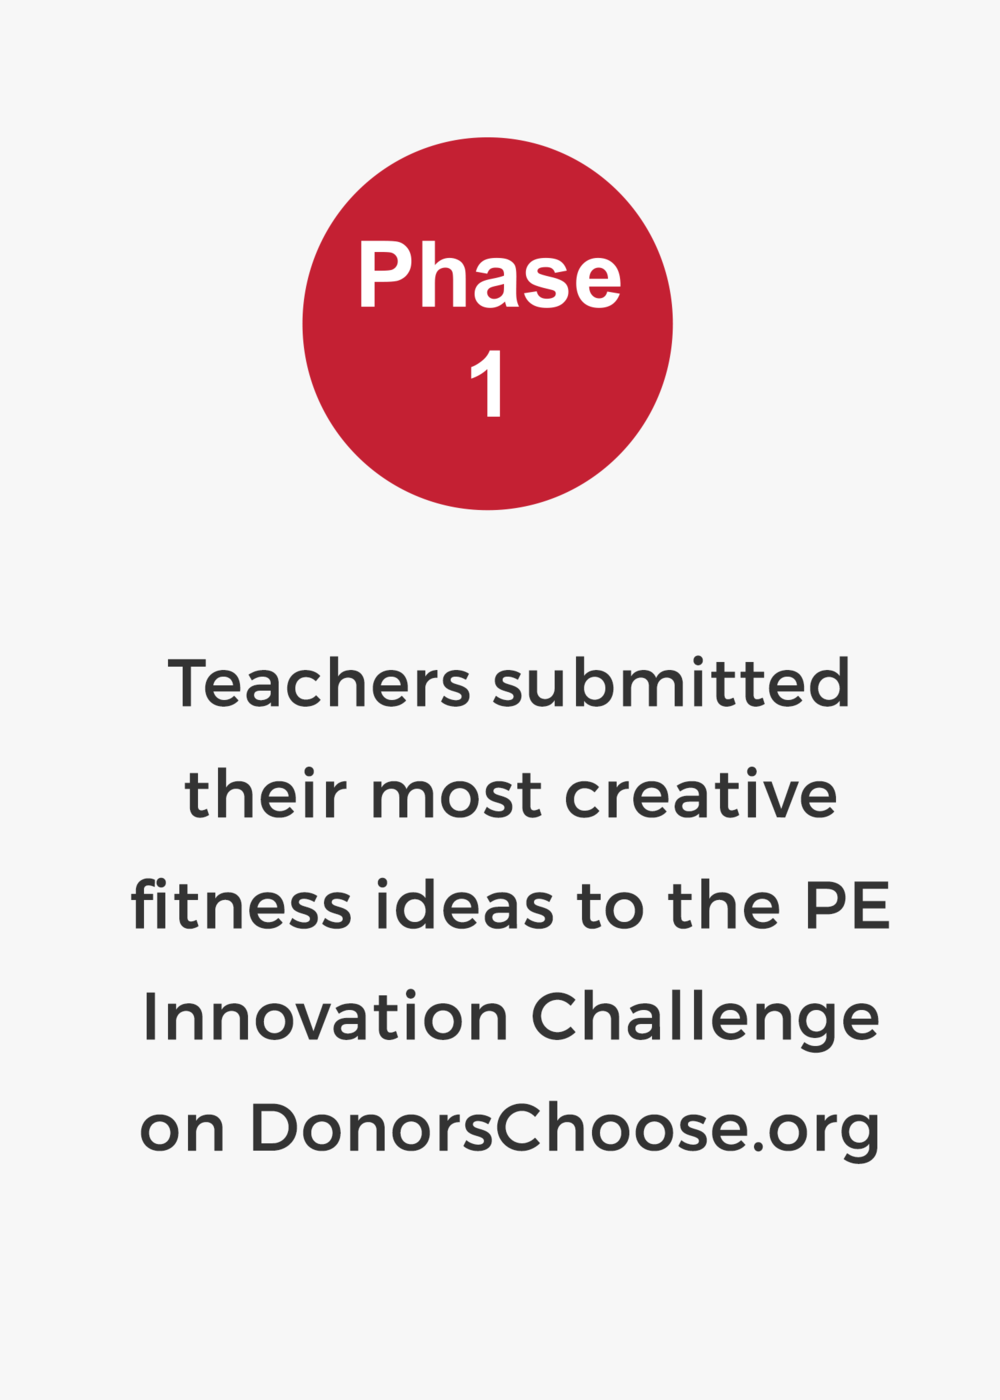 Physical educators submitted their most creative physical education idea to the PE Innovation Challenge on DonorsChoose.org.